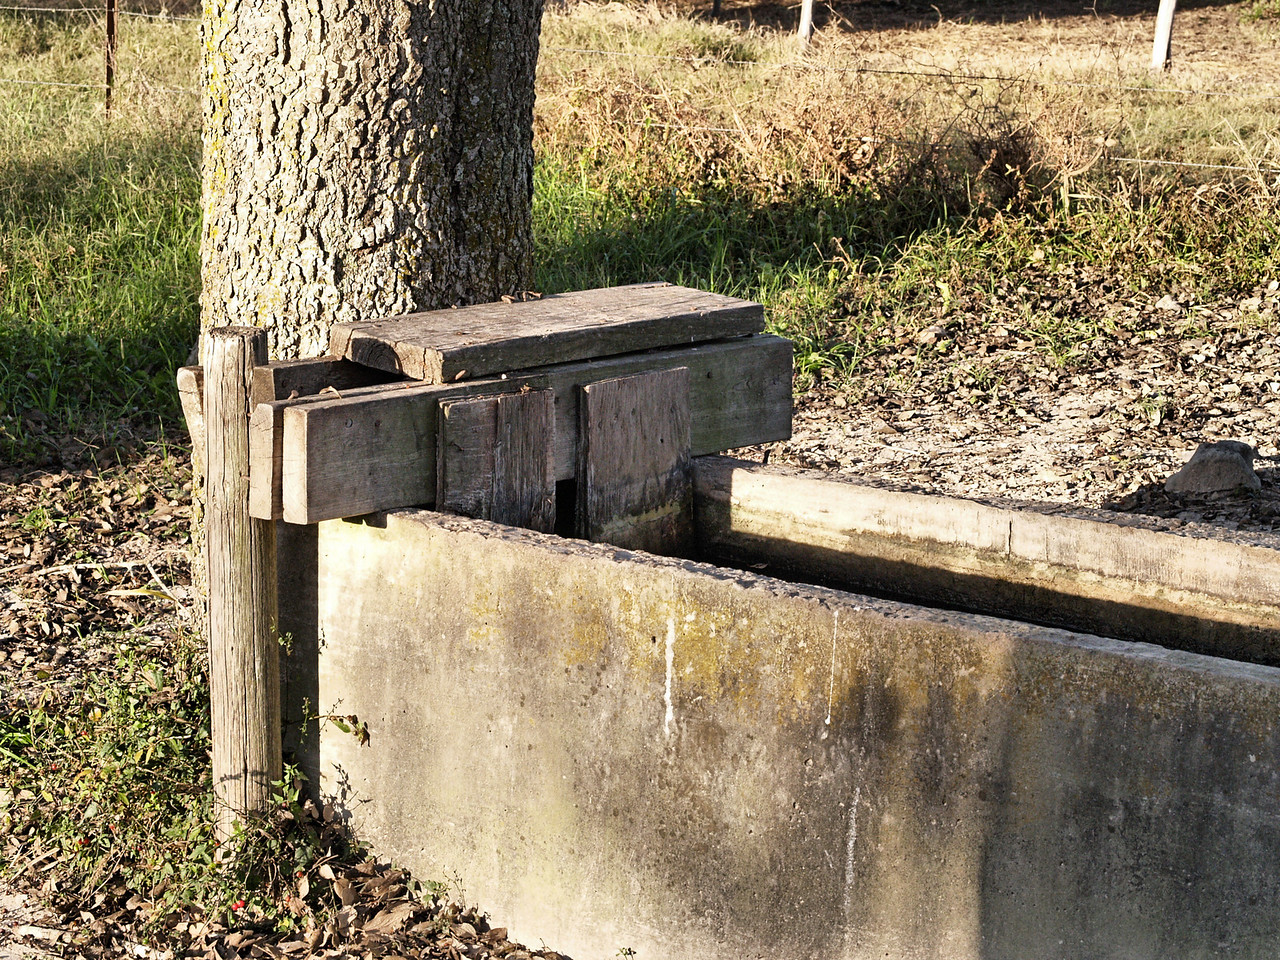 OLYMPUS DIGITAL CAMERA--Water trough.  We once had a calf fall into, and get stuck in the trough in freezing weather.  It was a major operation to overturn the trough, and free the calf before it died.